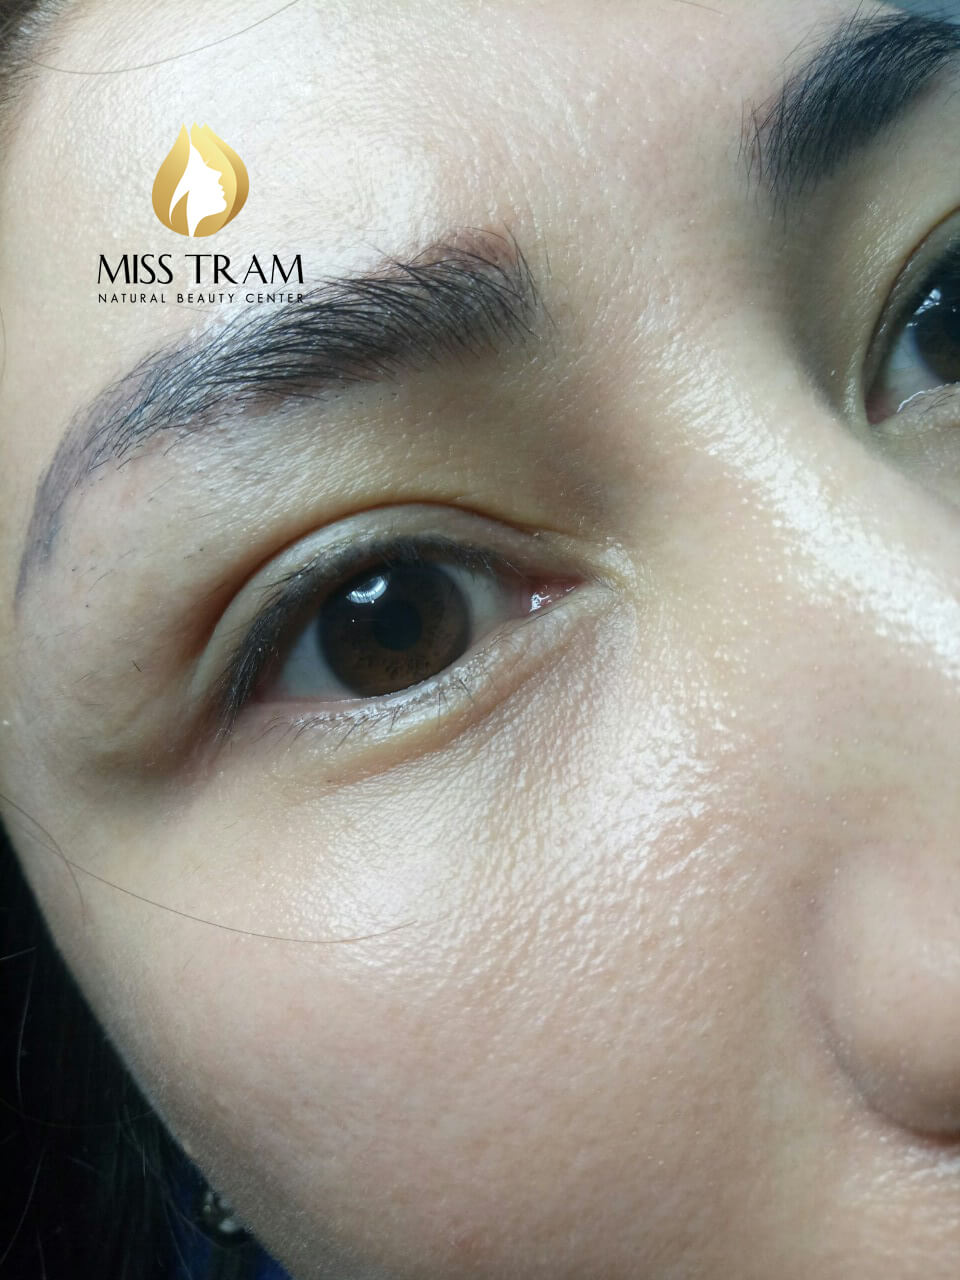 Should spray open eyelids at Miss Tram and spray open eyelids at miss tram cost much